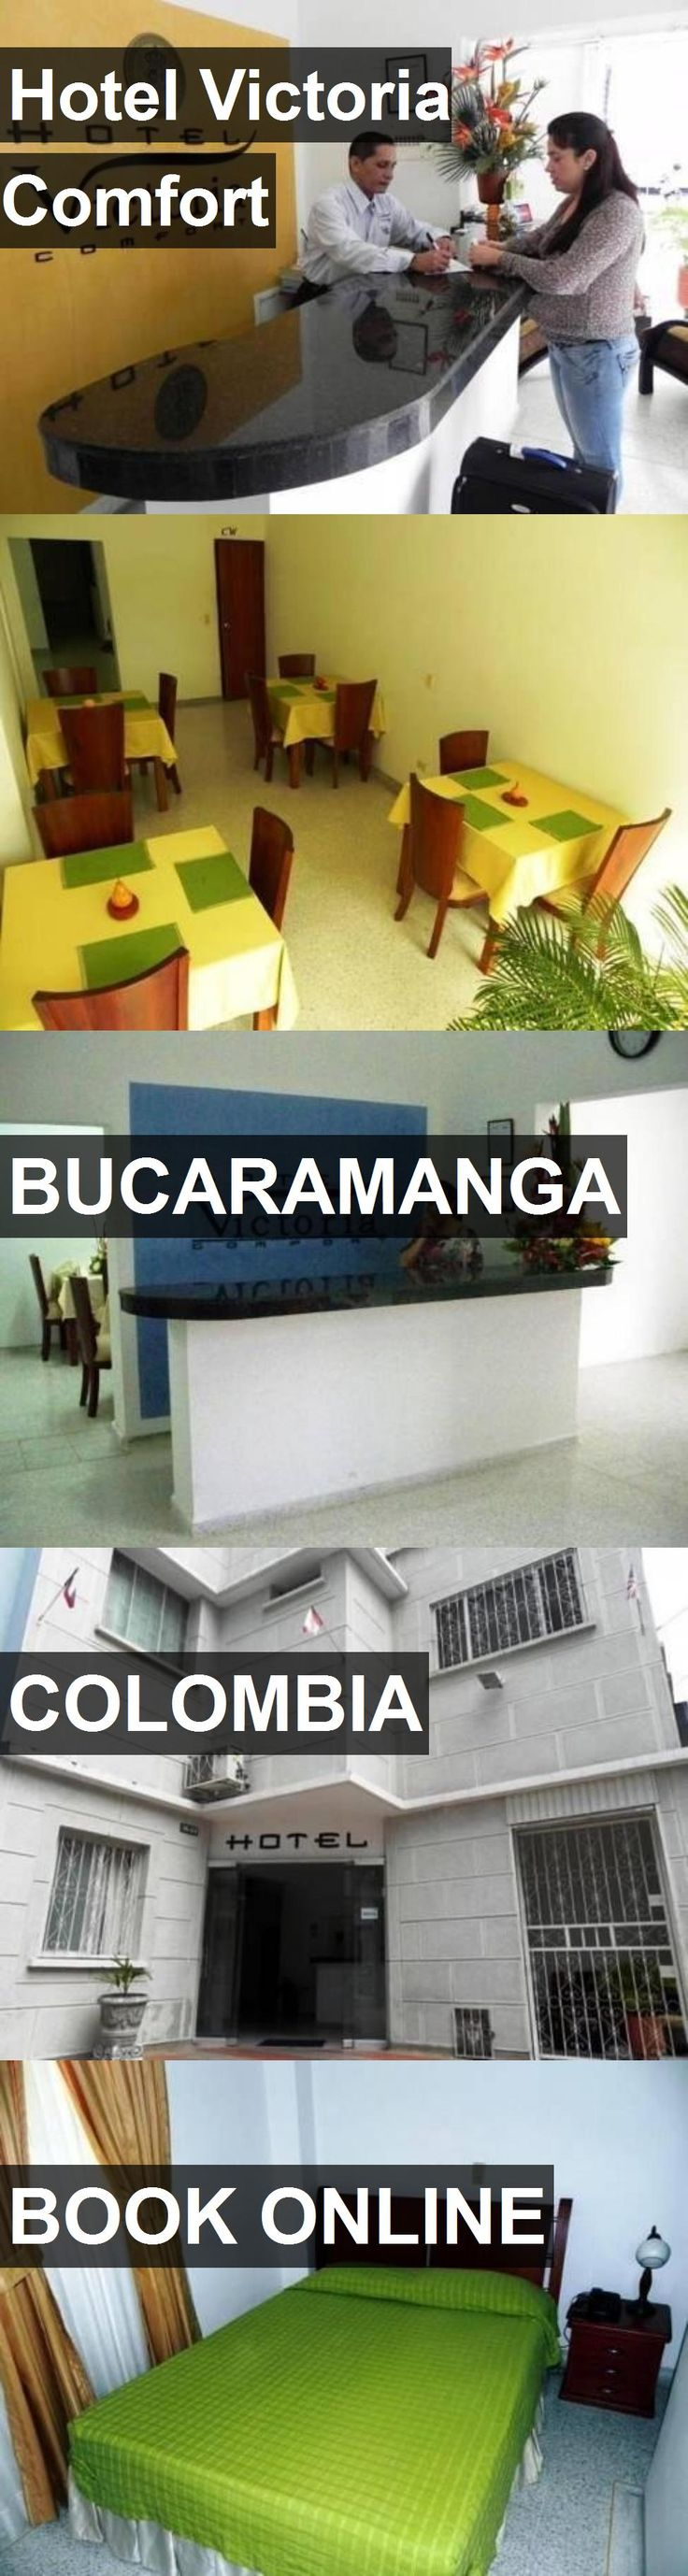 Hotel Hotel Victoria Comfort in Bucaramanga, Colombia. For more information, photos, reviews and best prices please follow the link. #Colombia #Bucaramanga #HotelVictoriaComfort #hotel #travel #vacation